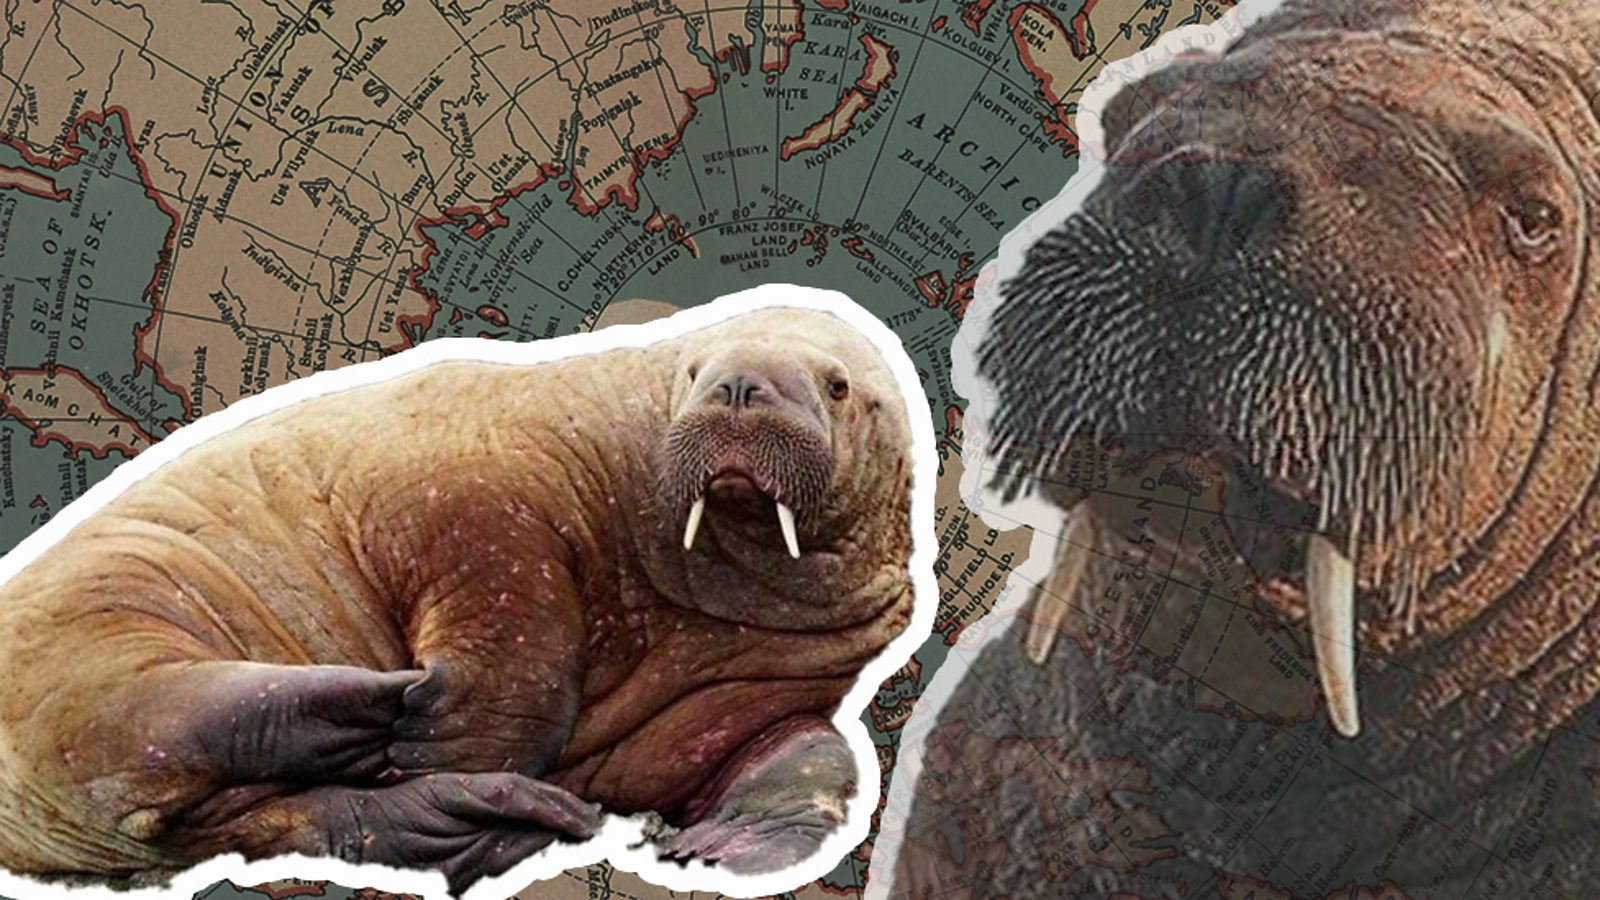 Why has Wally the walrus ended up in Wales?